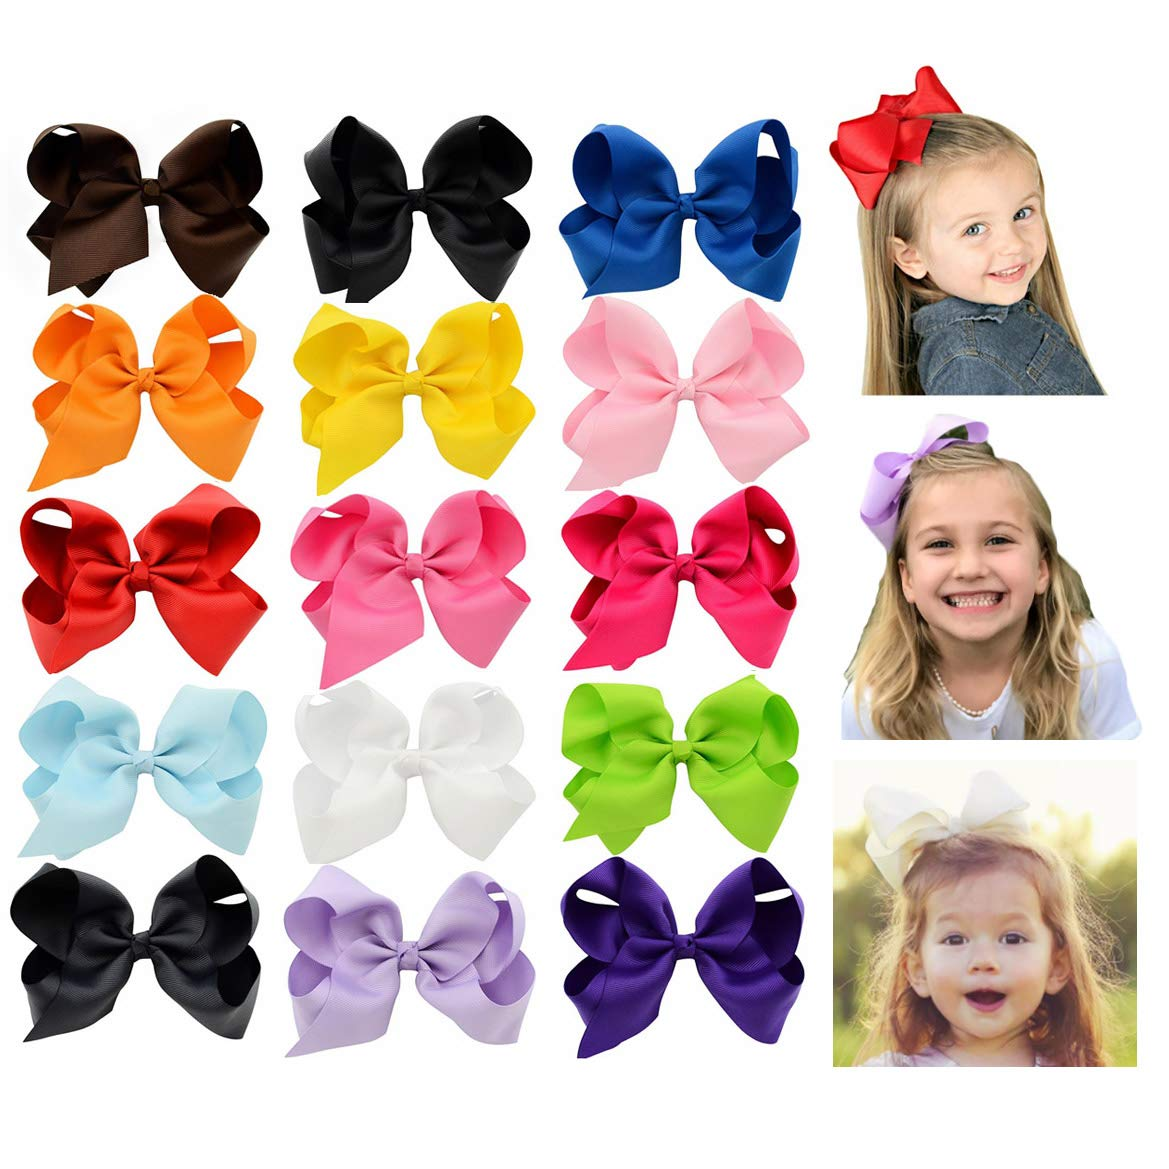 6 Inch Large Baby Hair Bows Barrettes Clip Holders Accessories For Toddler Girls 15 pcs by YHXX YLEN (Image #1)